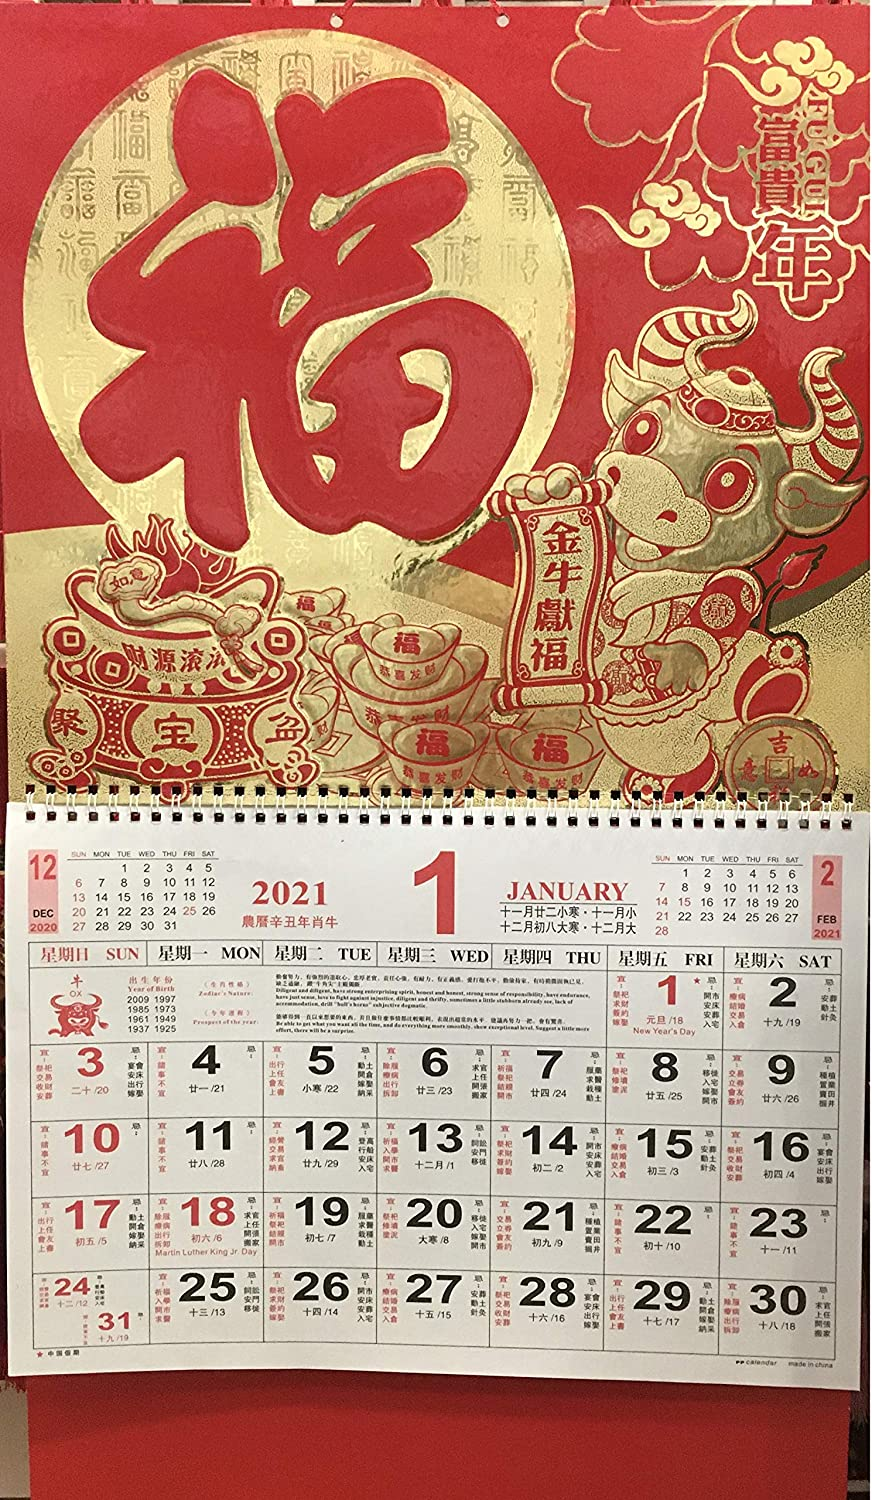 "2021 Chinese Calendar Monthly - for Year of The Ox -""Golden Oxen Bring Wealth to You"" - Measure: 25.5"" x 14.5"" (XL), USA (Fishes) Chinese and USA Holidays are Printed + Free Zodiac Card"